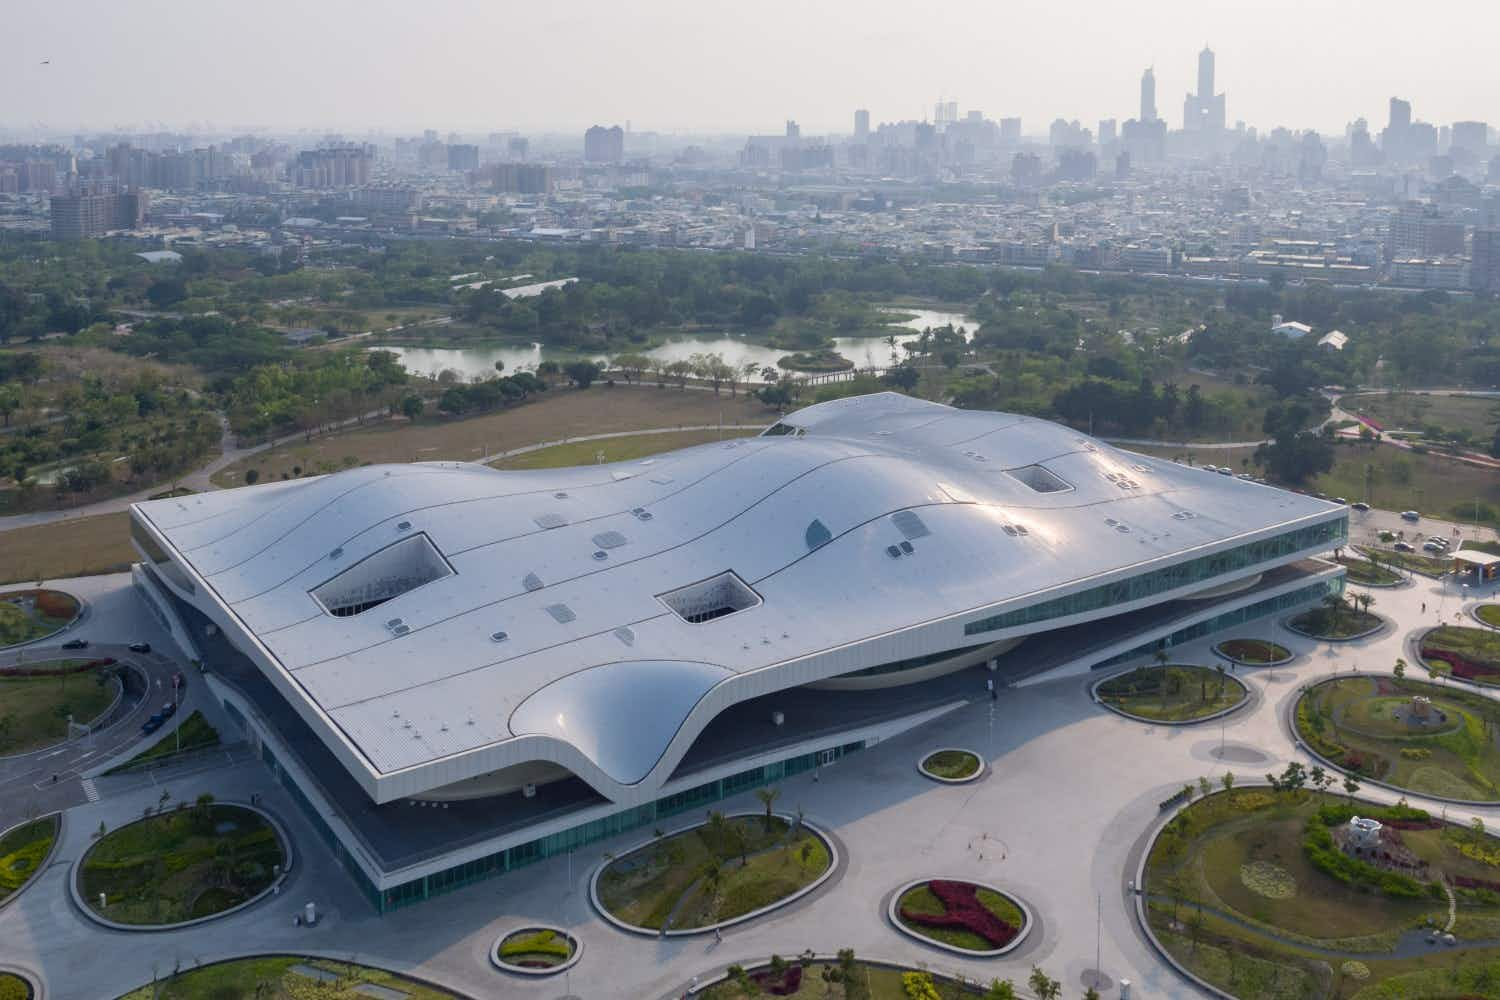 The world's largest performing arts centre under one roof is set to open in Taiwan